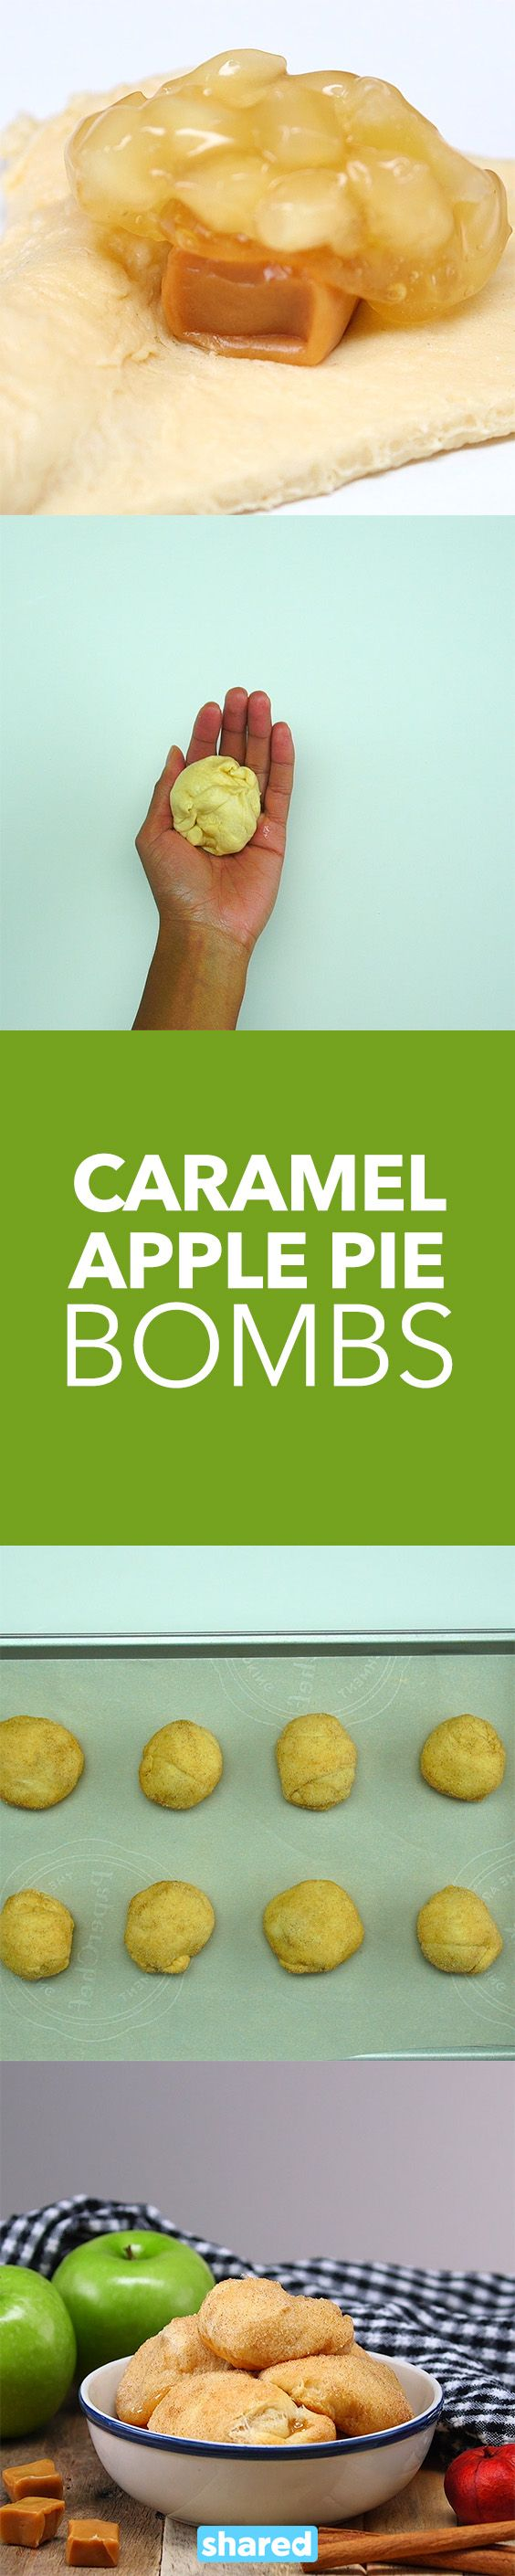 Caramel Apple Pie Bombs